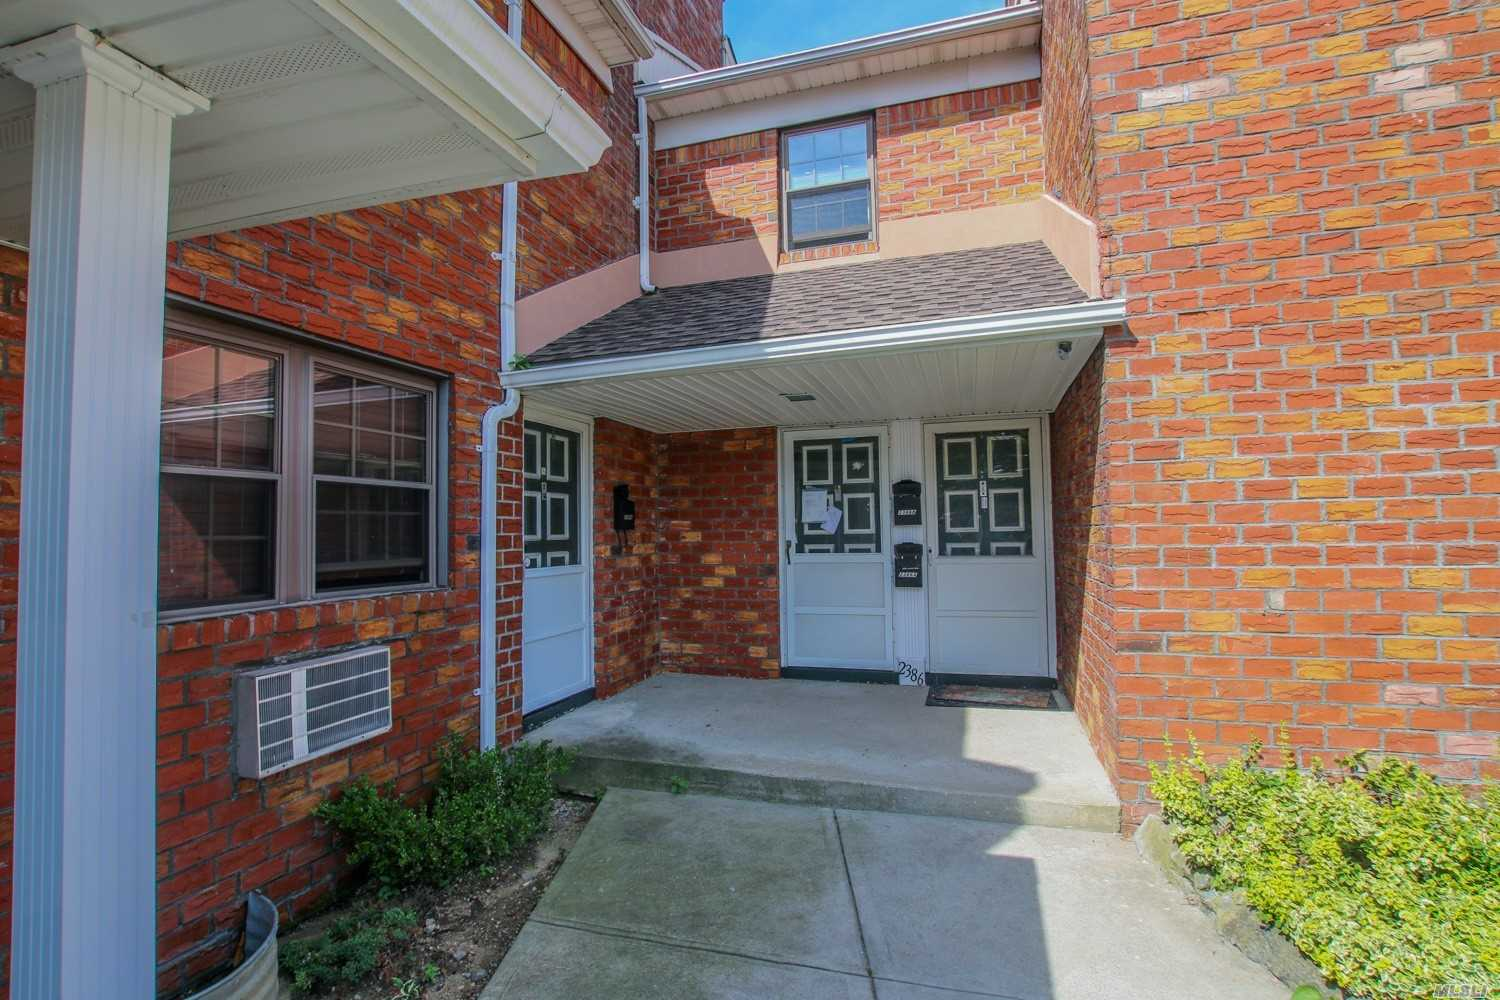 Sale May Be Subject To Term & Conditions Of An Offering Plan. Second Floor Condo. New Eik/Granite, Tile Backsplash, Ss Appliances, H/W Frlrs, Ceiling Fans, Huge Attic With Wood Flooring, W/D In Unit, Close To Rr, & Shopping, Convenient To All, Plenty Of Visitor Parking.Unit Receives 1 Parking Space, Come See, Wont Last!